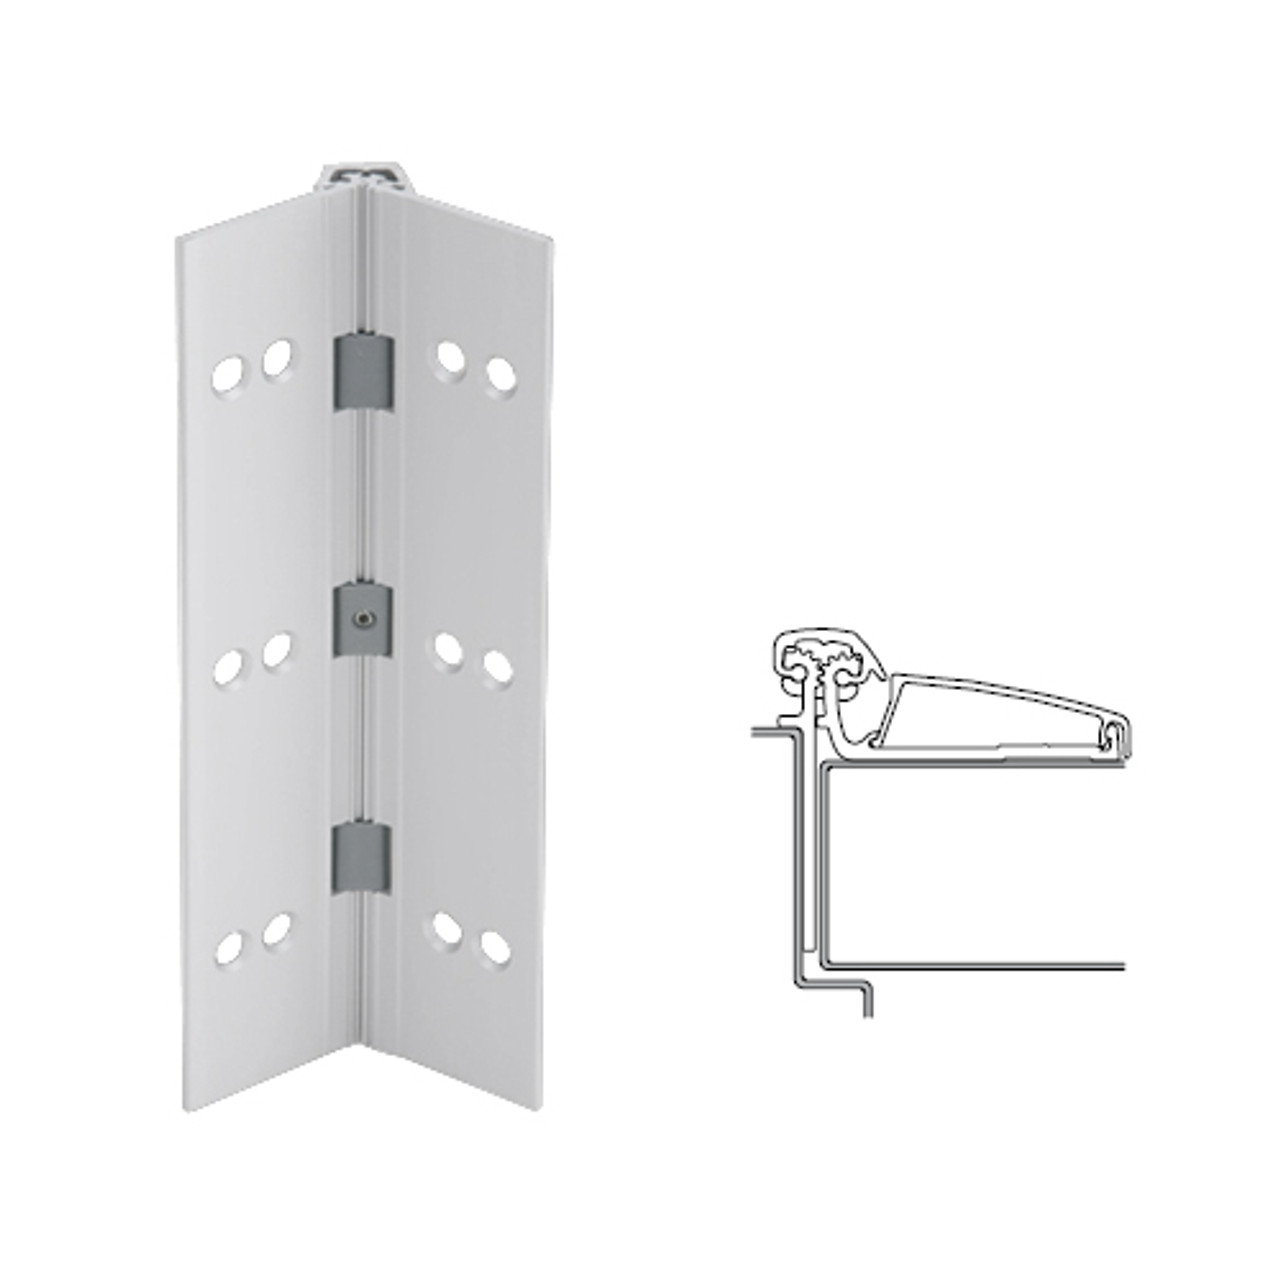 046XY-US28-120 IVES Adjustable Half Surface Continuous Geared Hinges in Satin Aluminum